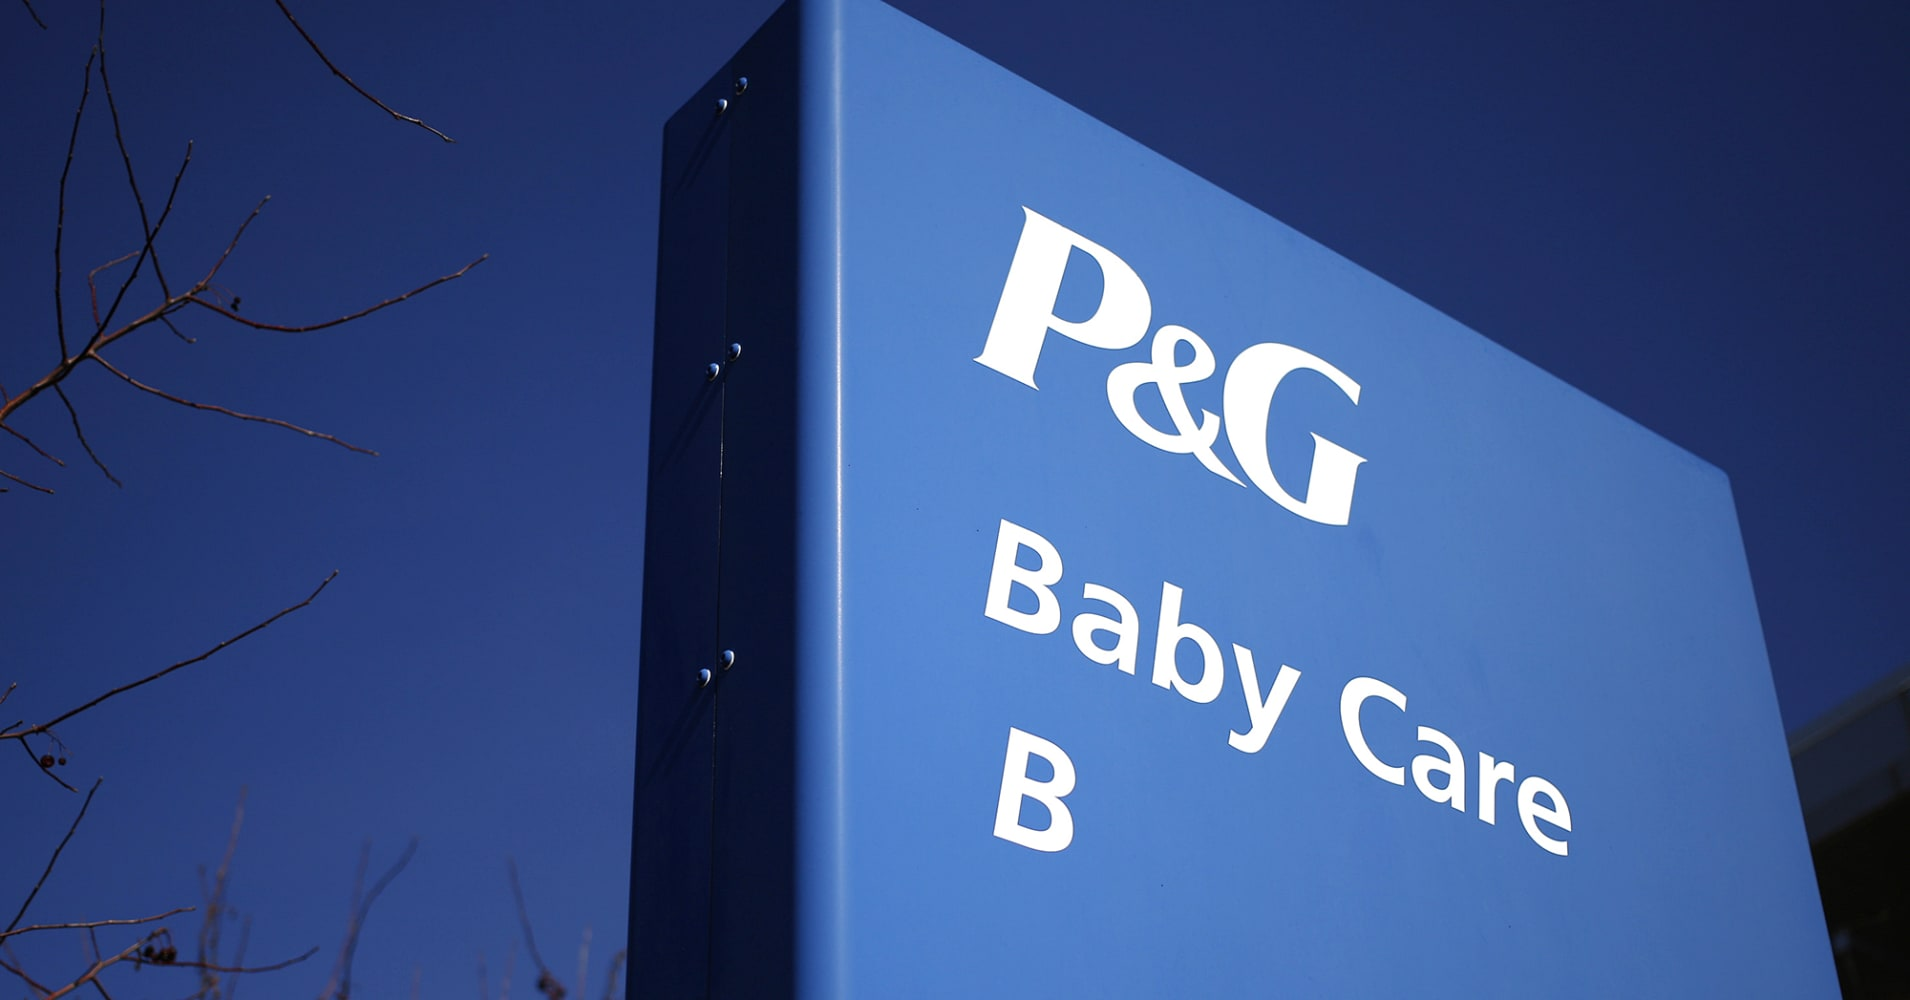 application in procter and gamble